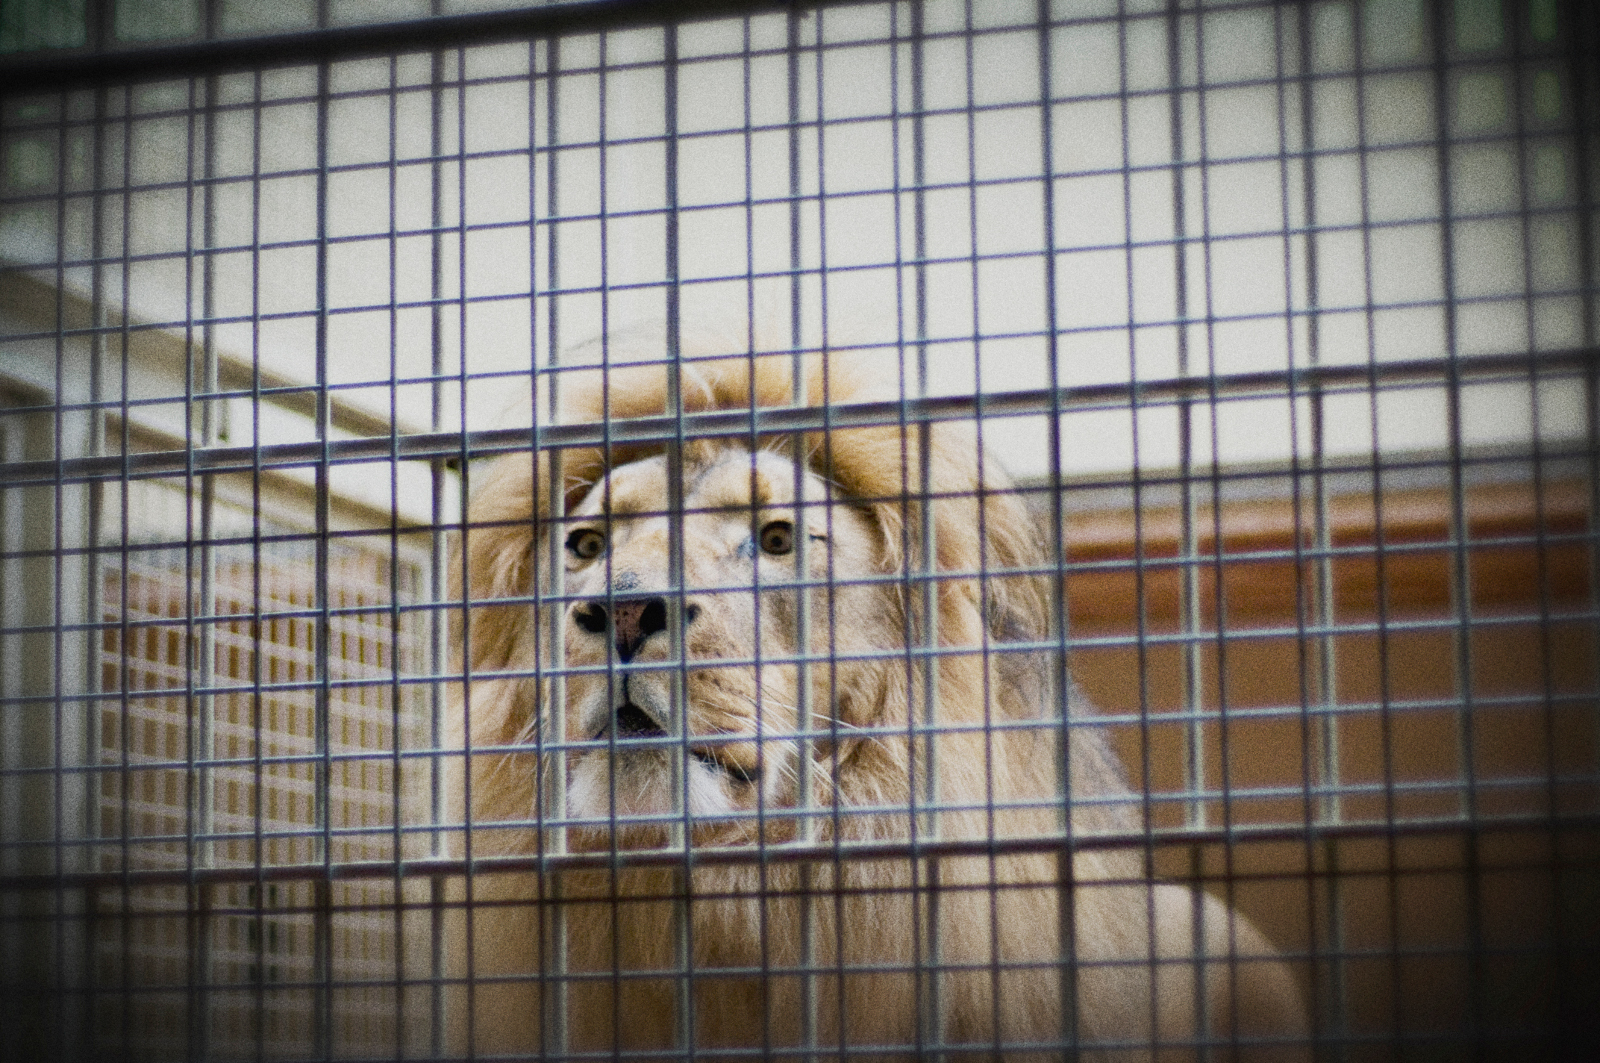 Wild Animals Are Not Disposable Inventory in a Warehouse. Why Trophy Hunting Can't be Justified